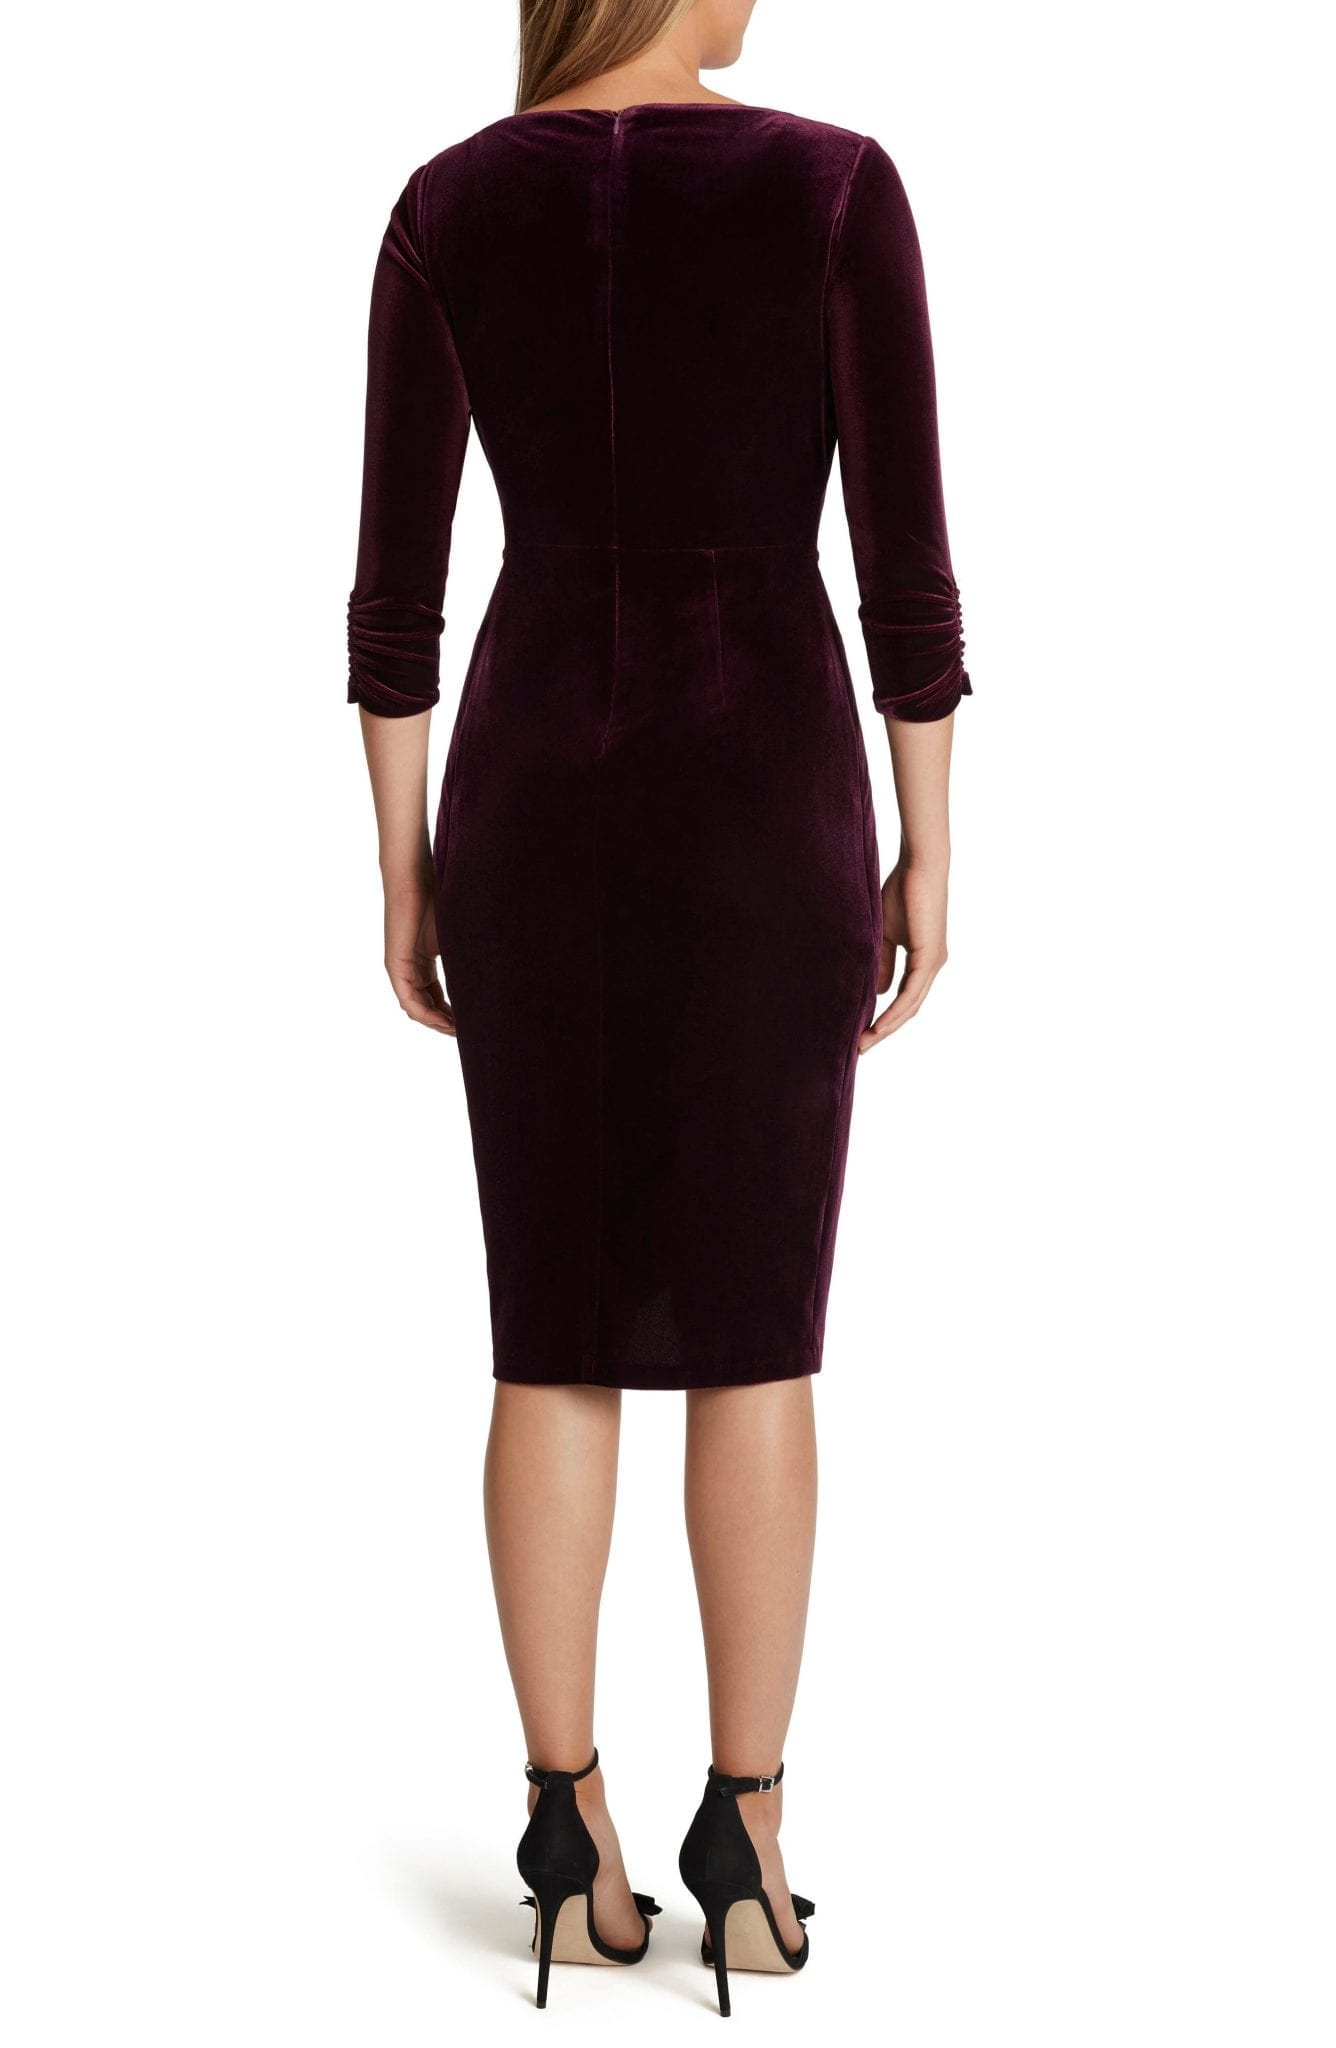 TAHARI Stretch Velvet Side Knot Dress